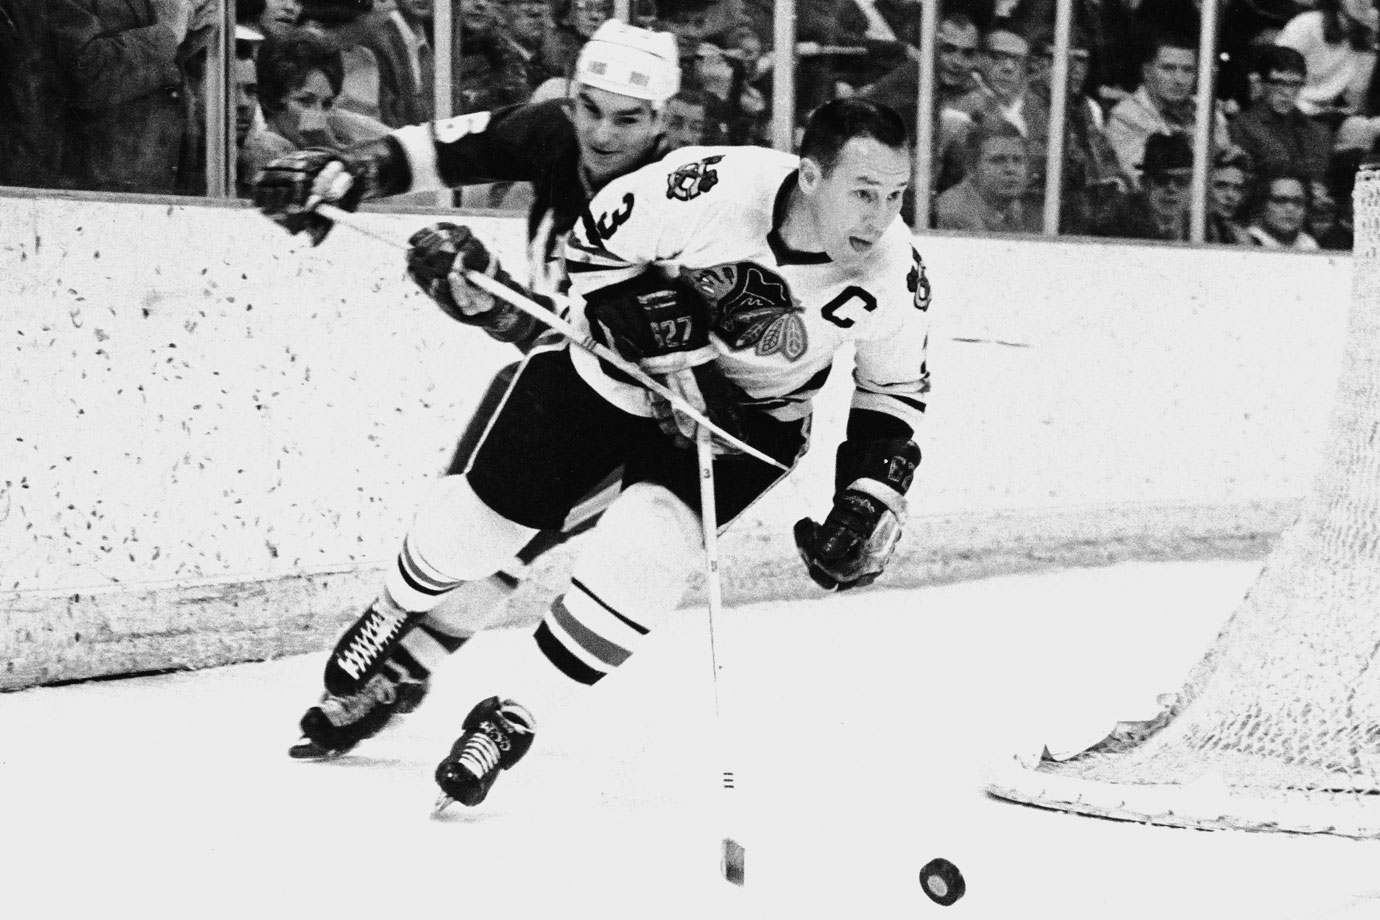 Pilote joined the Chicago in 1955, won the Stanley Cup in 1961 and became the Blackhawks' captain the next season. Teamed with Moose Vasko for most of his career as one of the game's top defensive tandems, he won three Norris Trophies and was runner-up three times. He had the offensive skills to be a fixture on the power play, scoring 14 goals in 1964-65 when Chicago again reached the Cup finals, and a nasty side with his stick, twice amassing 160 penalty minutes in a season.